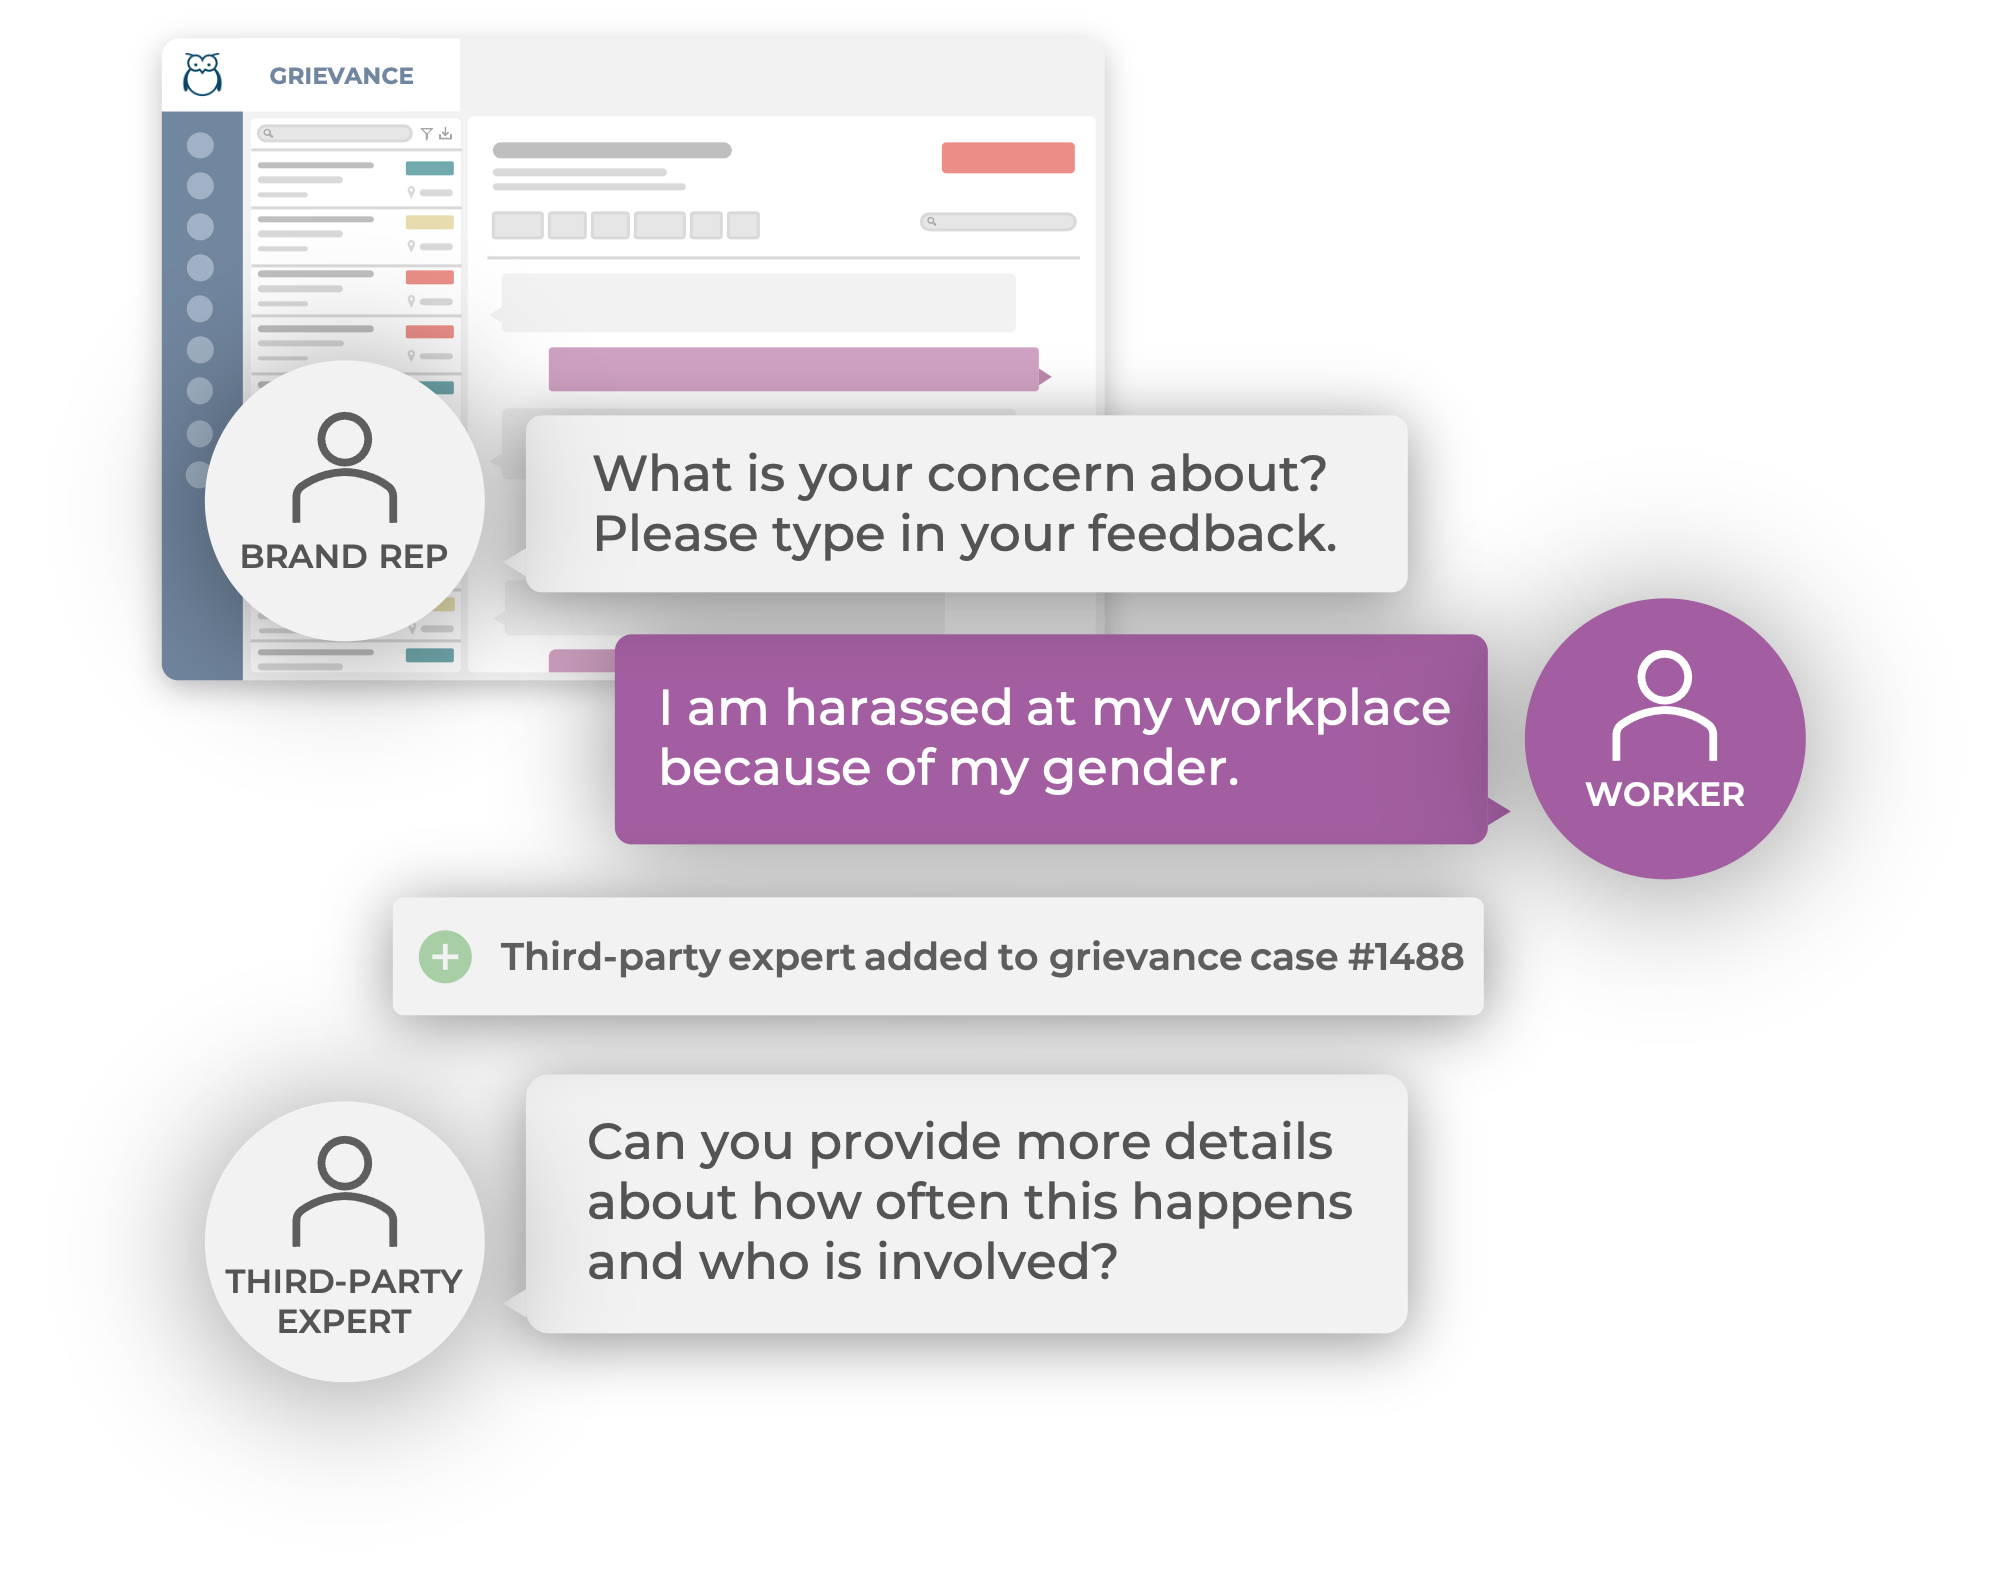 Ulula grievance platform showing two-way chat between worker, brand representative and third-party expert collaborating on a case